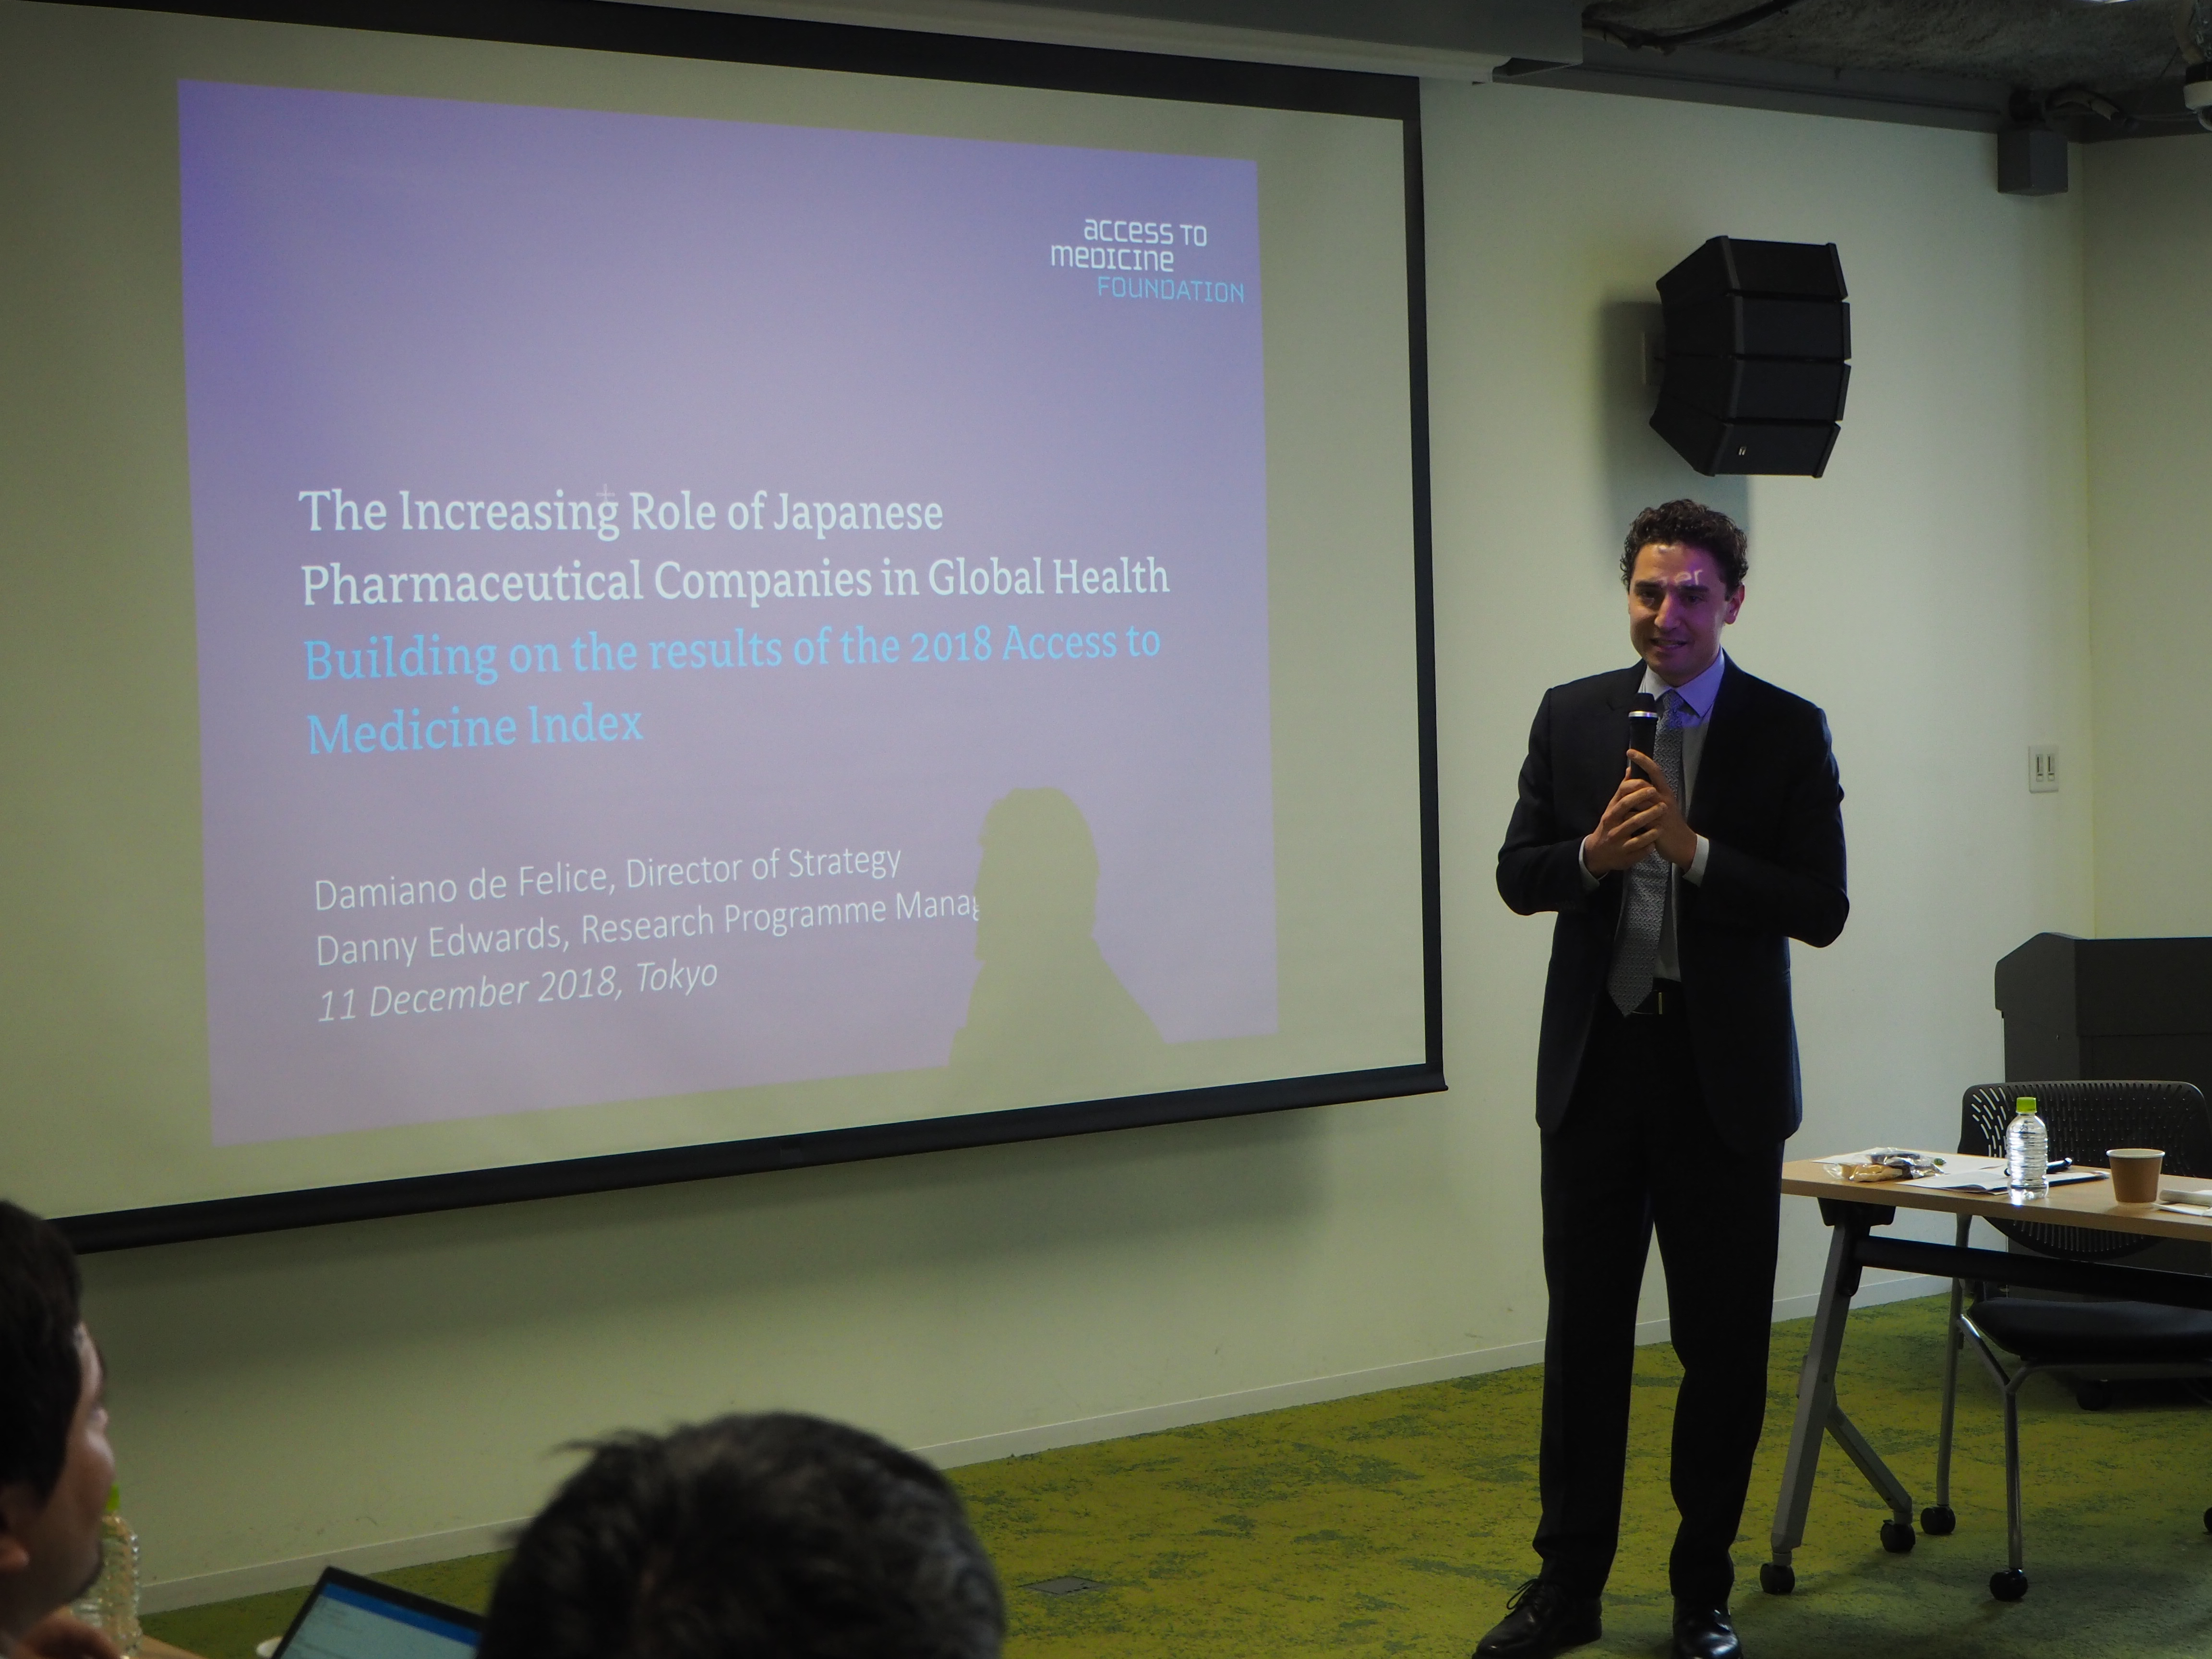 [Event report] Roundtable – The Increasing Role of Japanese Pharmaceutical Companies in Global Health (December 11, 2018)